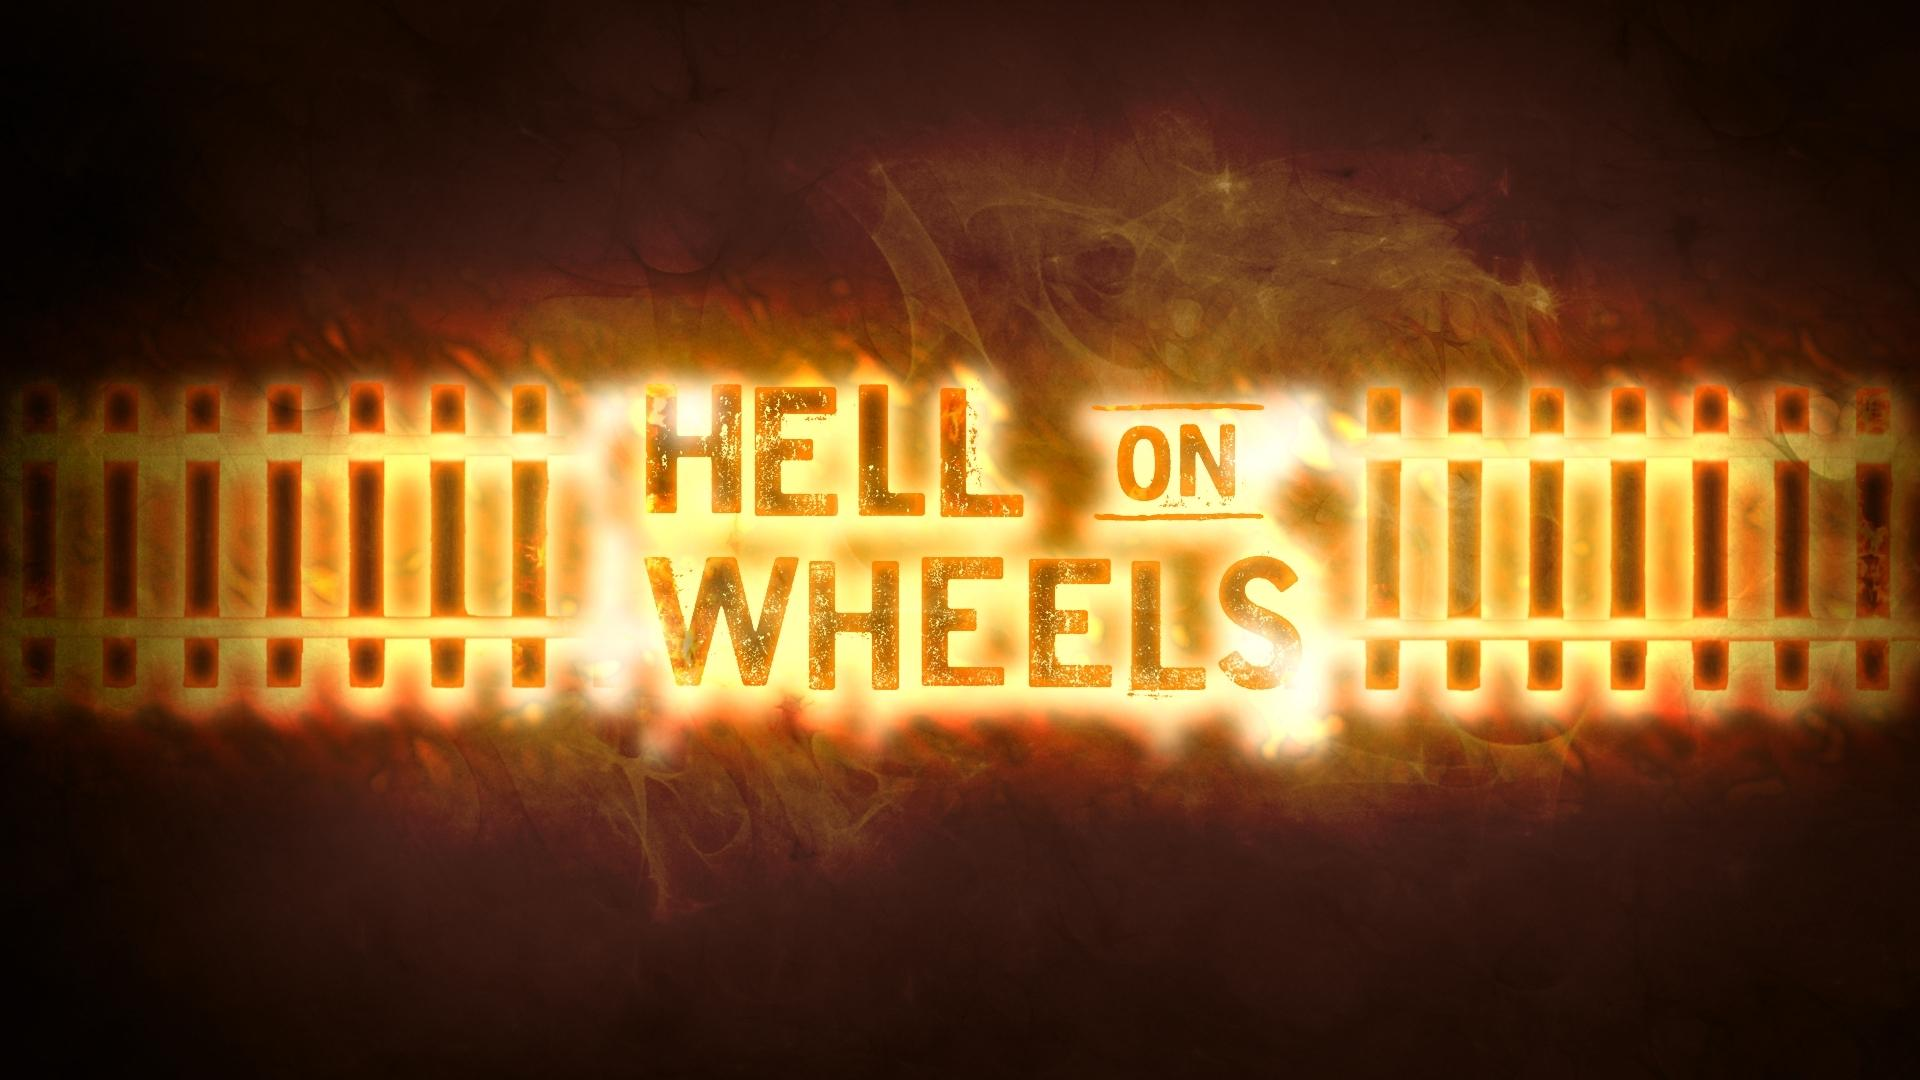 Desktop Wallpaper Hd 3d Full Screen Baby Fire Logo Of Hell On Wheels Hd Desktop Wallpaper